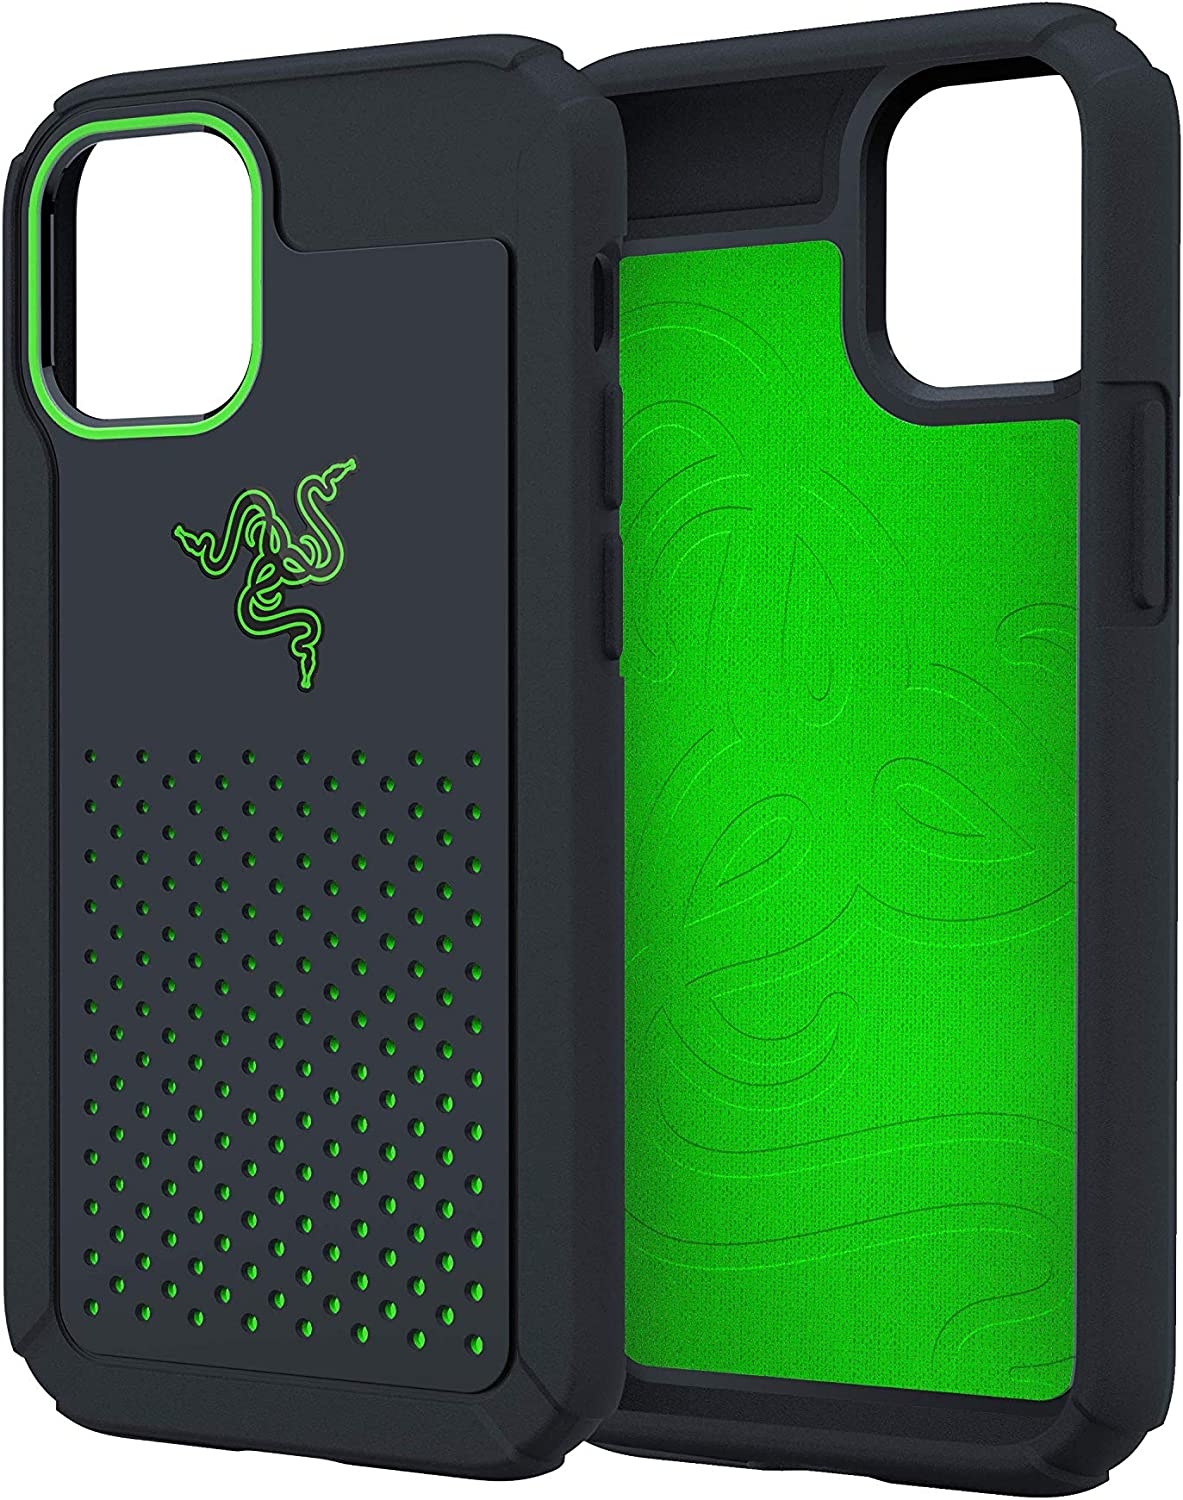 Razer Arctech Pro for iPhone 12 and iPhone 12 Pro Case: Thermaphene & Venting Performance Cooling - Wireless Charging Compatible - Drop-Test Certified - 5G Compatible - Matte Black